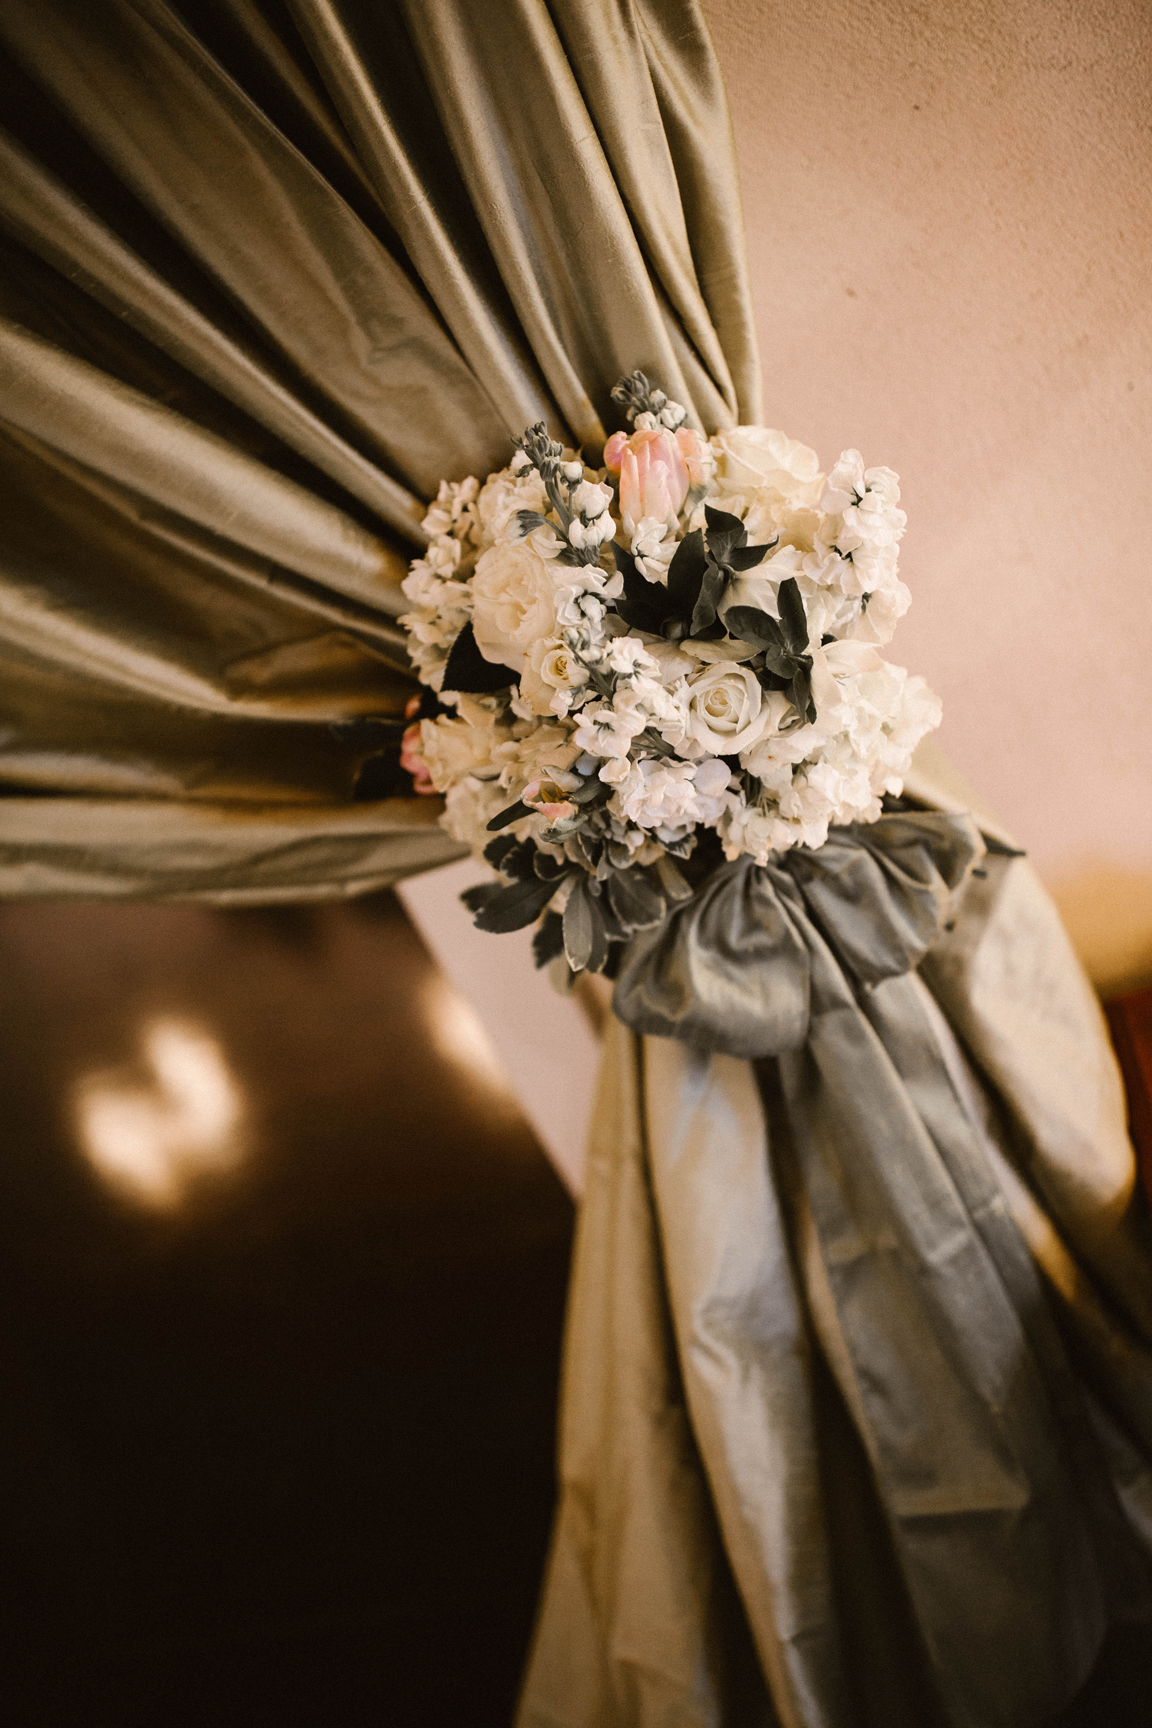 DeLille+Cellars_The+Chateau_Woodinville_2017_Weddings+In+Woodinville145.jpg